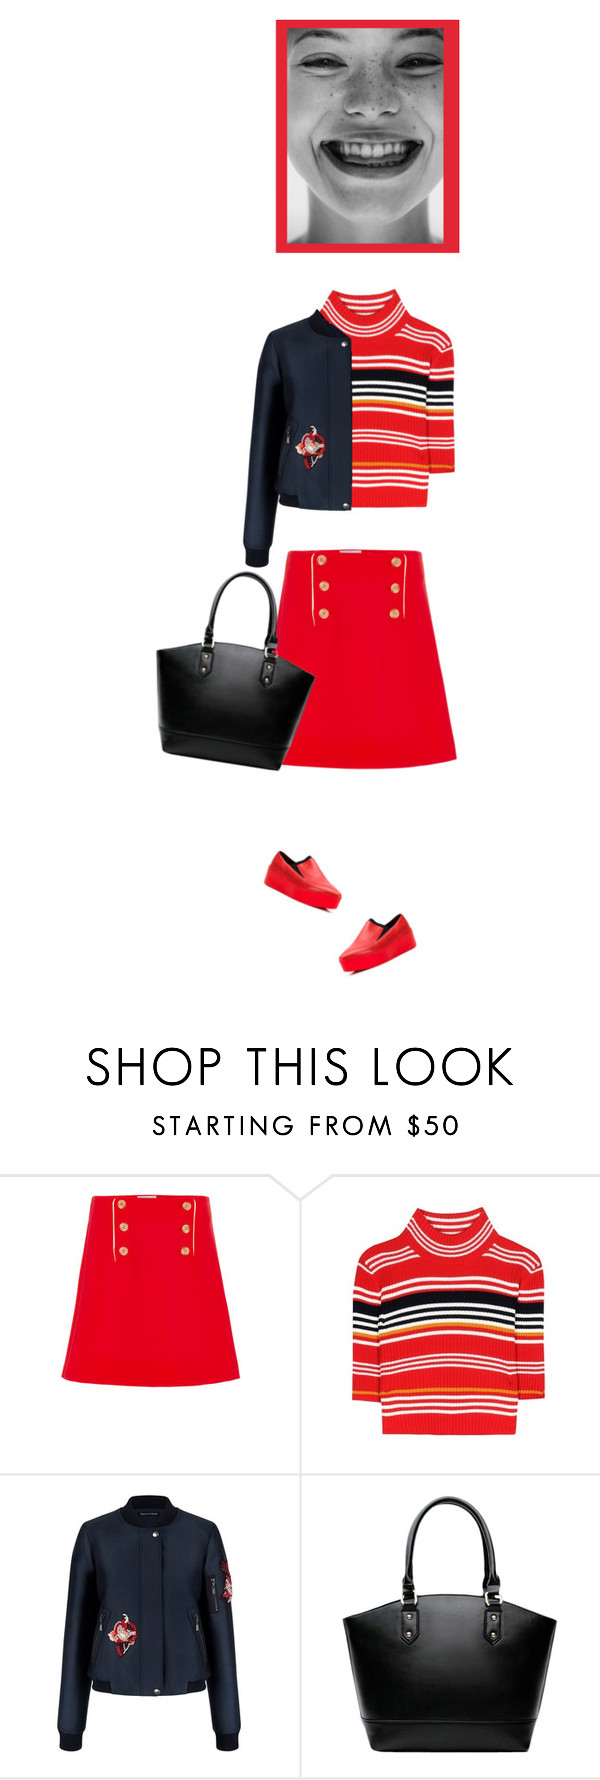 """""""school uniform 2016"""" by bodangela ❤ liked on Polyvore featuring Clover Canyon, Alessandra Rich, Vic Matié, women's clothing, women's fashion, women, female, woman, misses and juniors"""